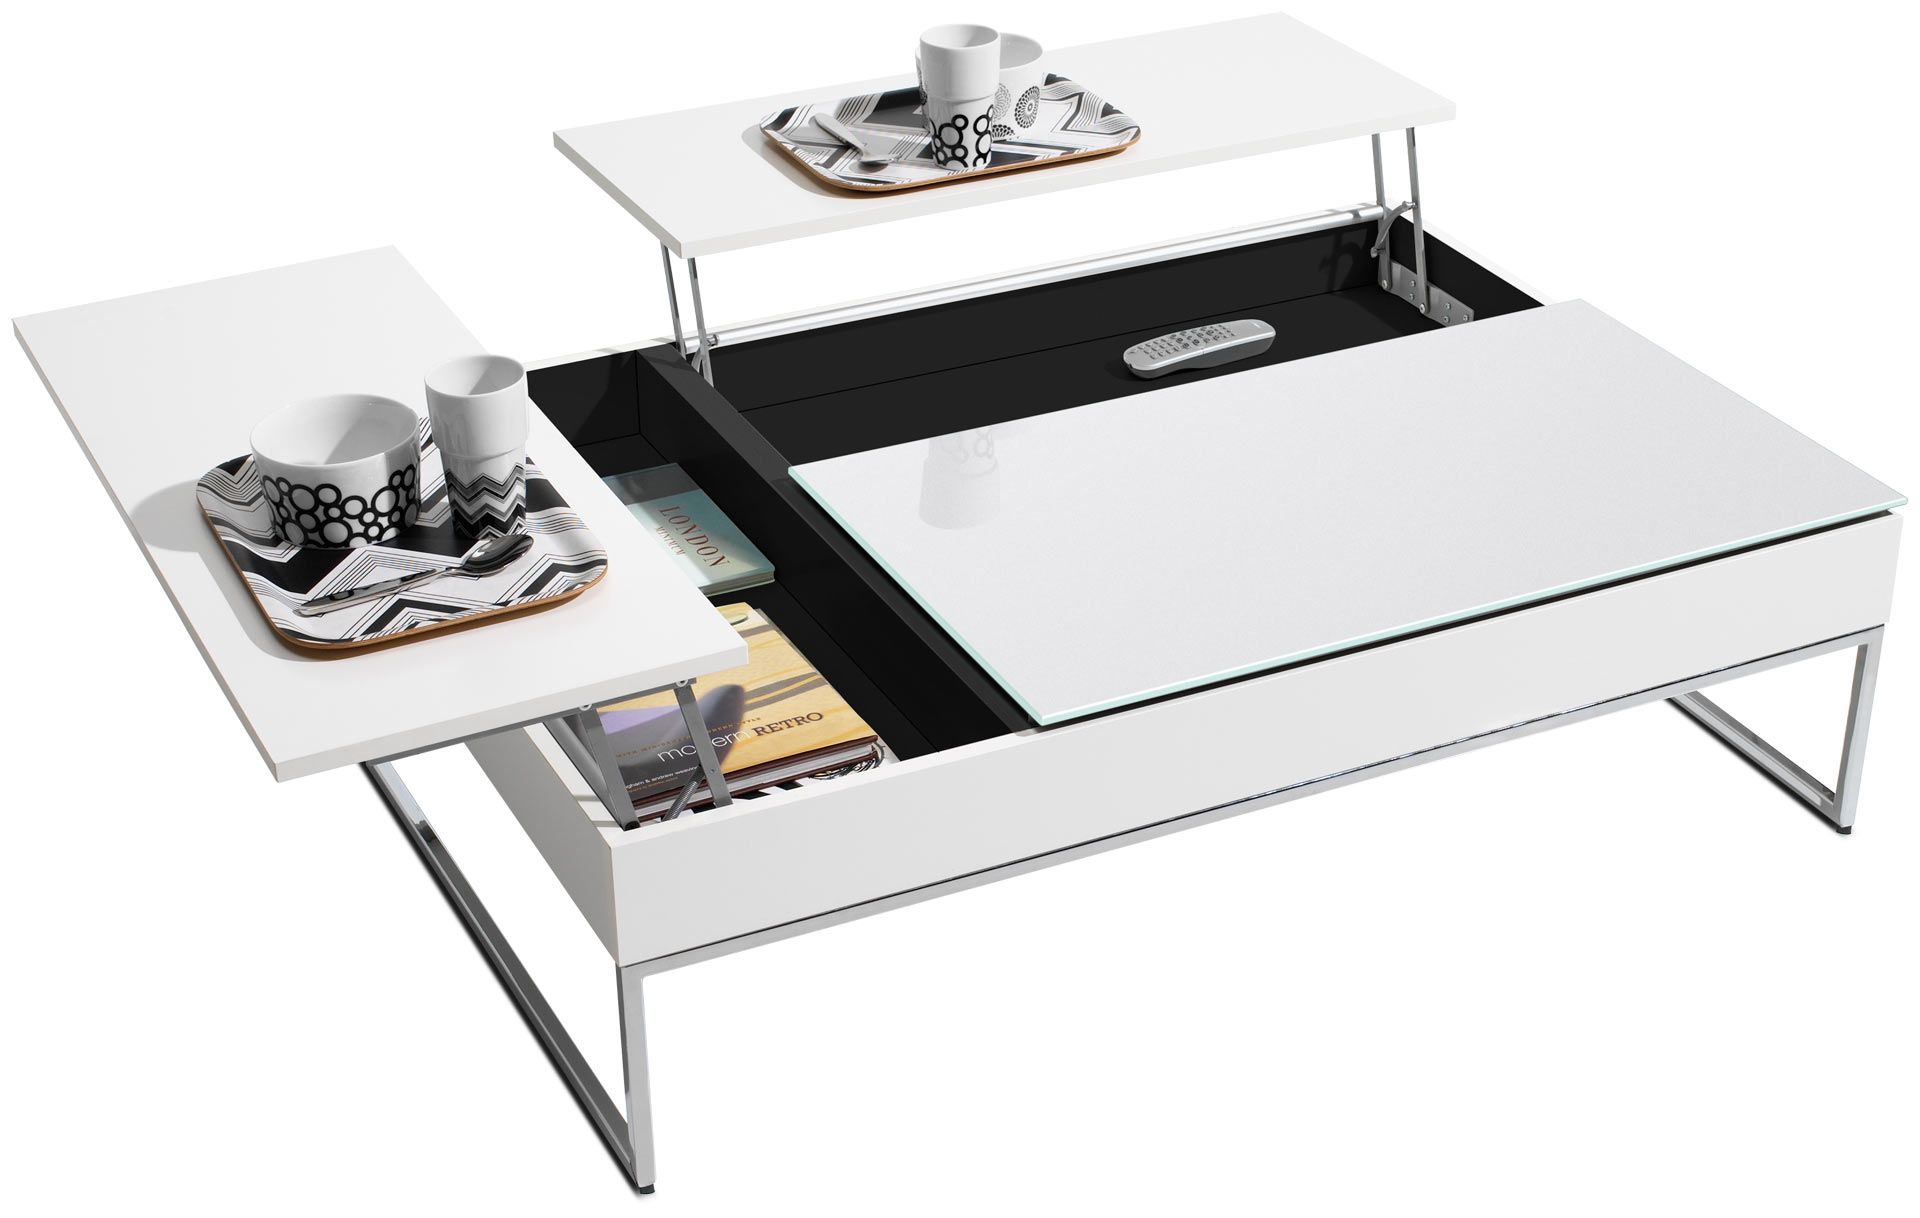 Ozzio Couchtisch E-motion Chiva Functional Coffee Table With Storage 1 195 Home